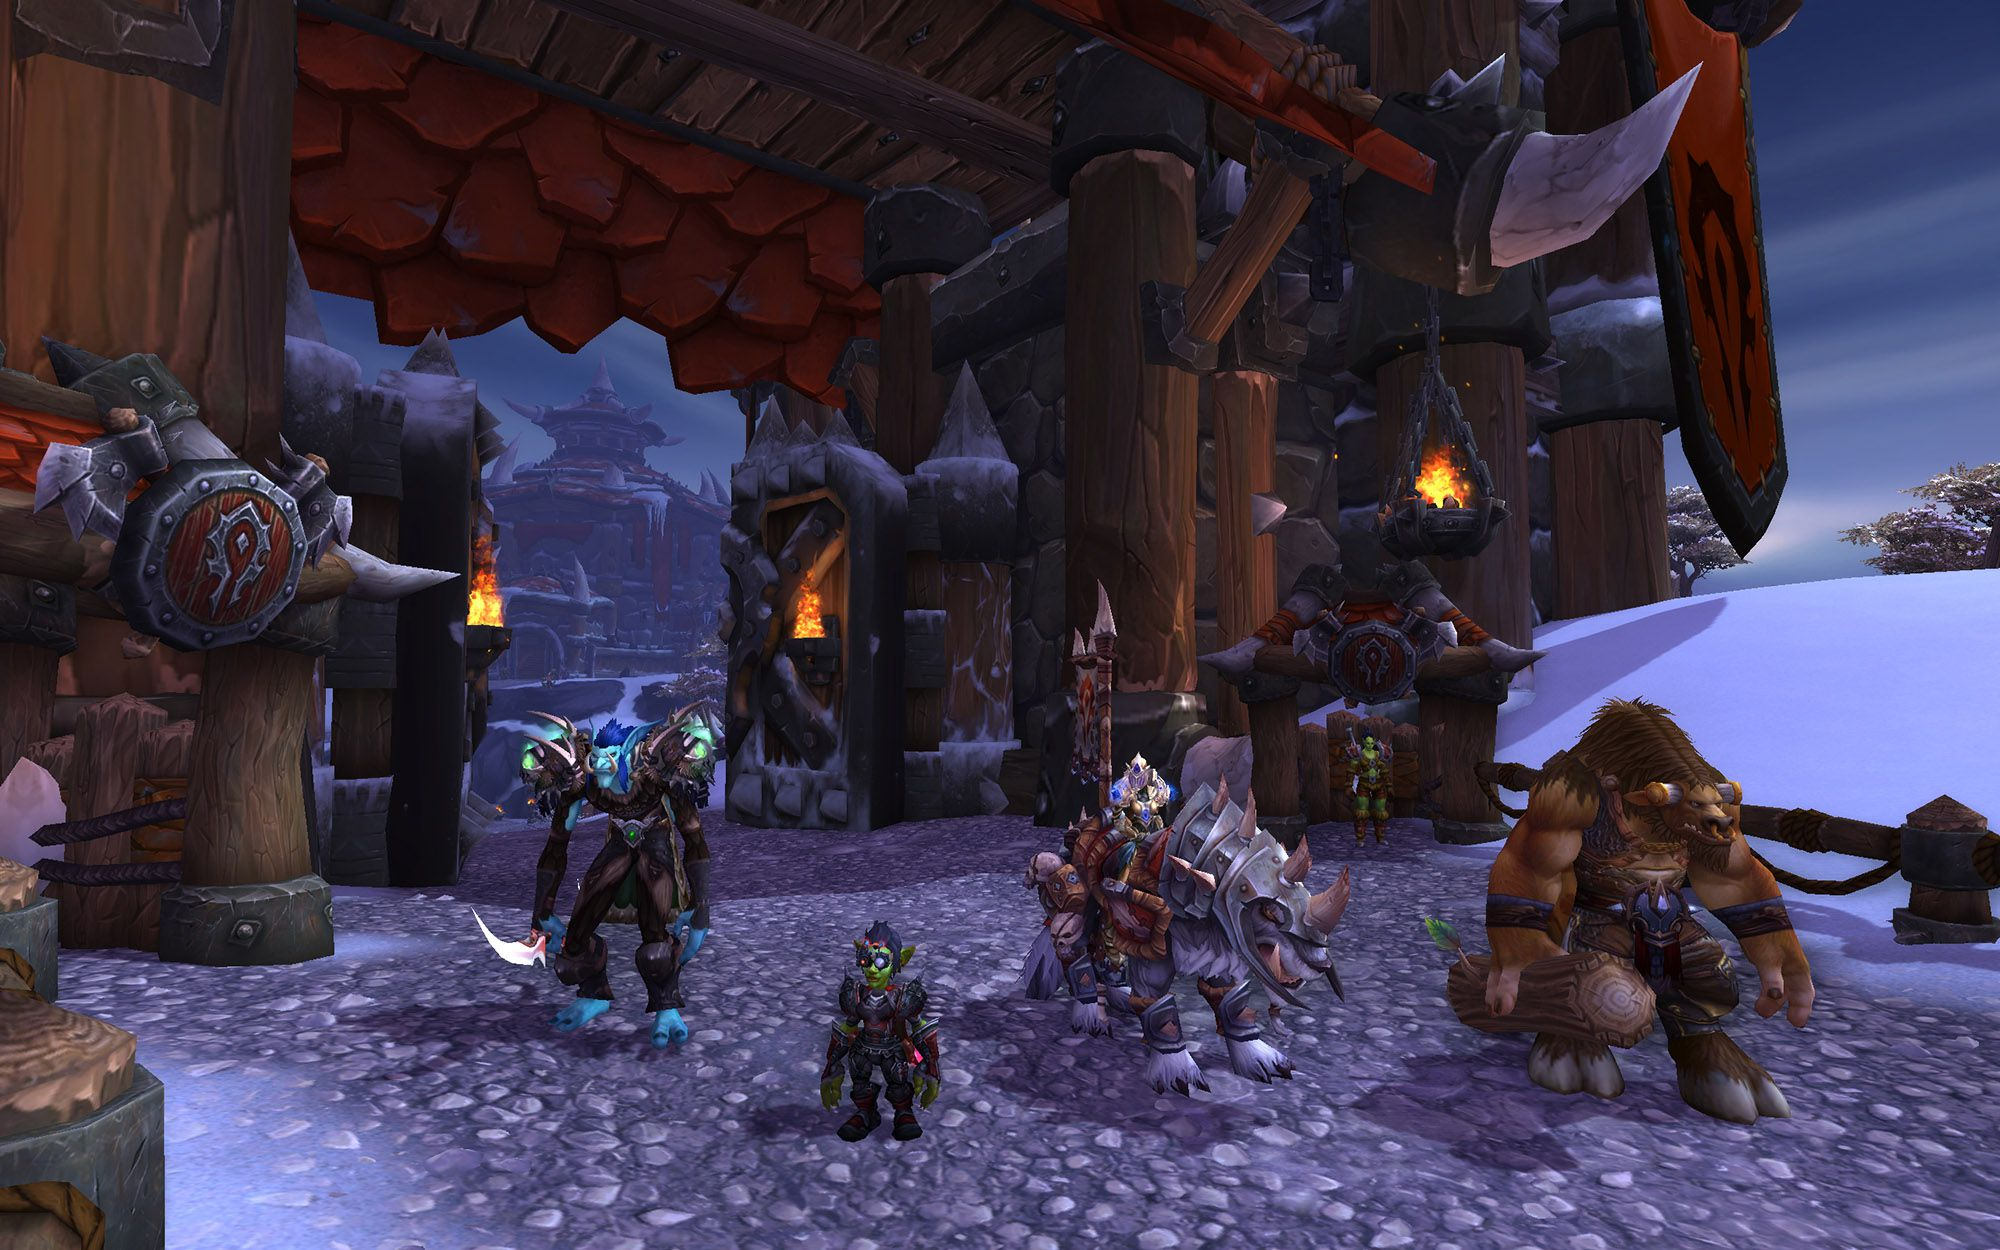 World of Warcraft: Warlords of Draenor review c 2000